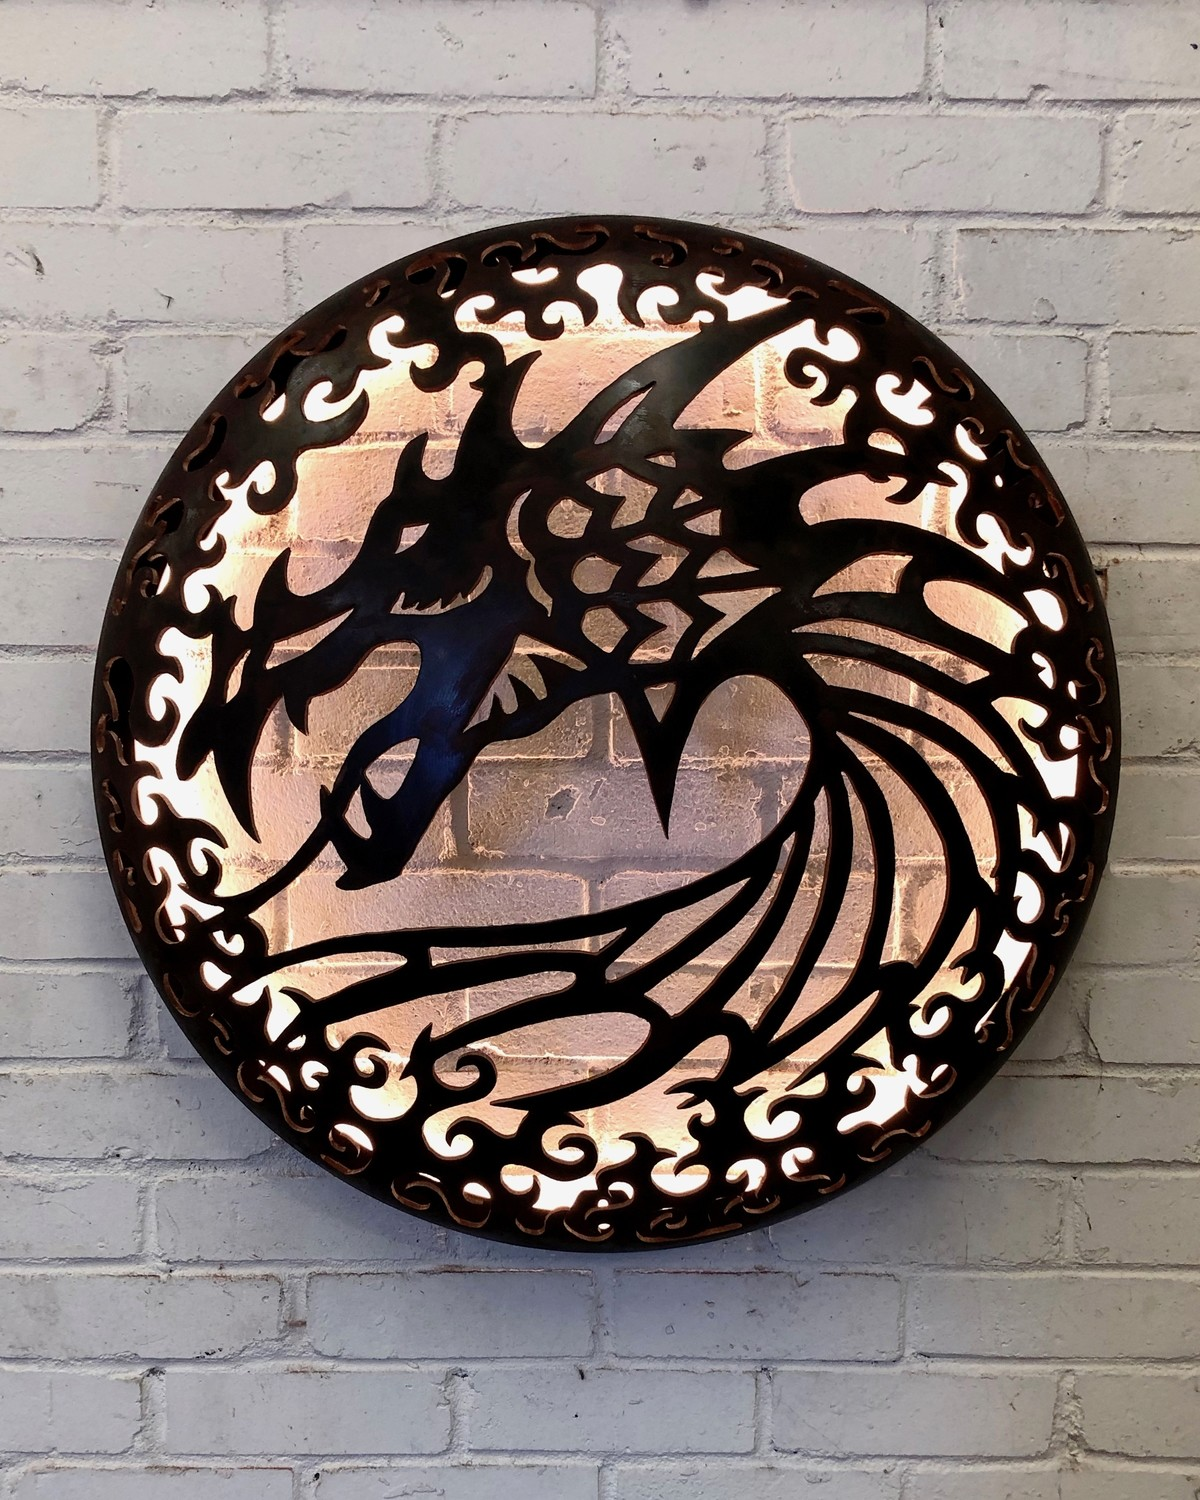 Illuminated Wall Mount - Dragon Design 725mm